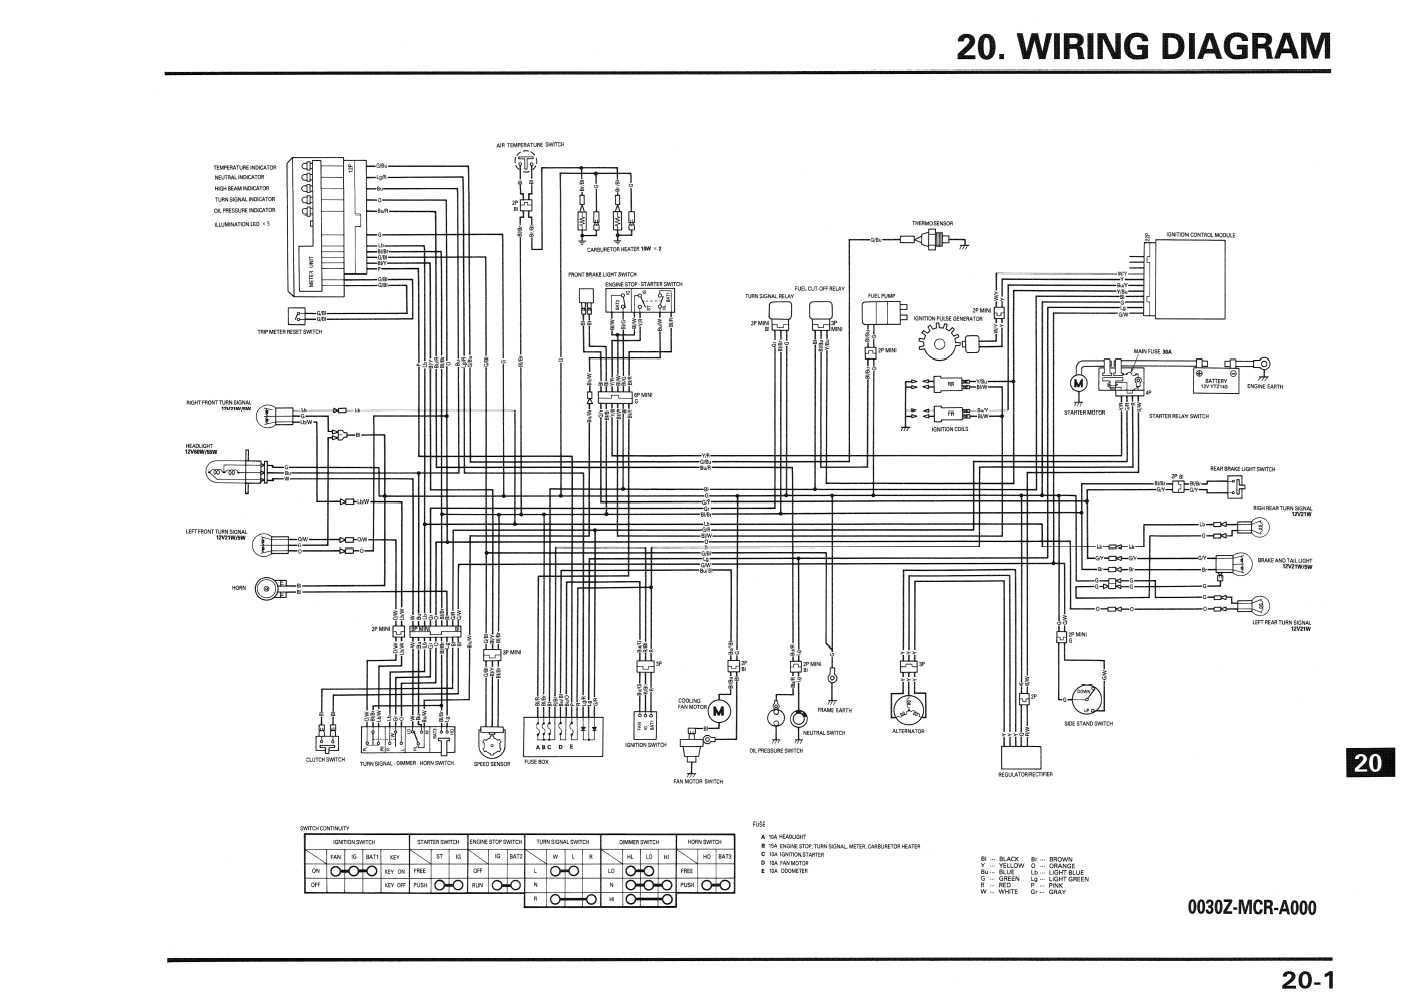 61mcr02_348_1 honda vt750dc shop manual wiring diagram 1983 honda shadow 750 wiring diagram at soozxer.org